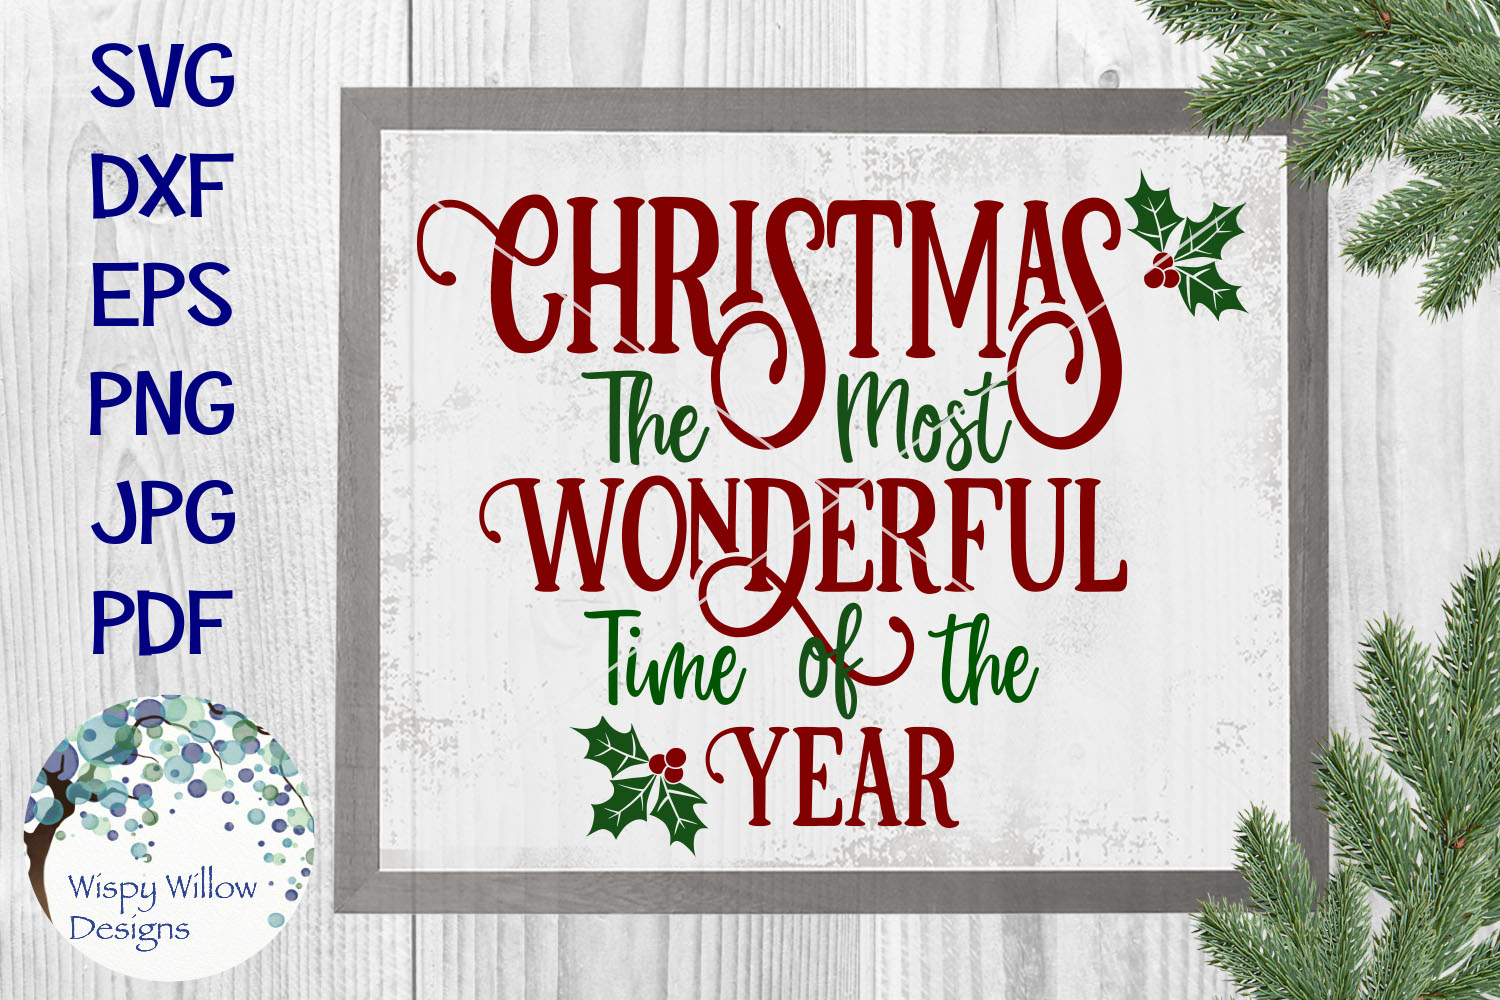 Download Free Christmas The Most Wonderful Time Of The Year Svg Graphic By Wispywillowdesigns Creative Fabrica for Cricut Explore, Silhouette and other cutting machines.